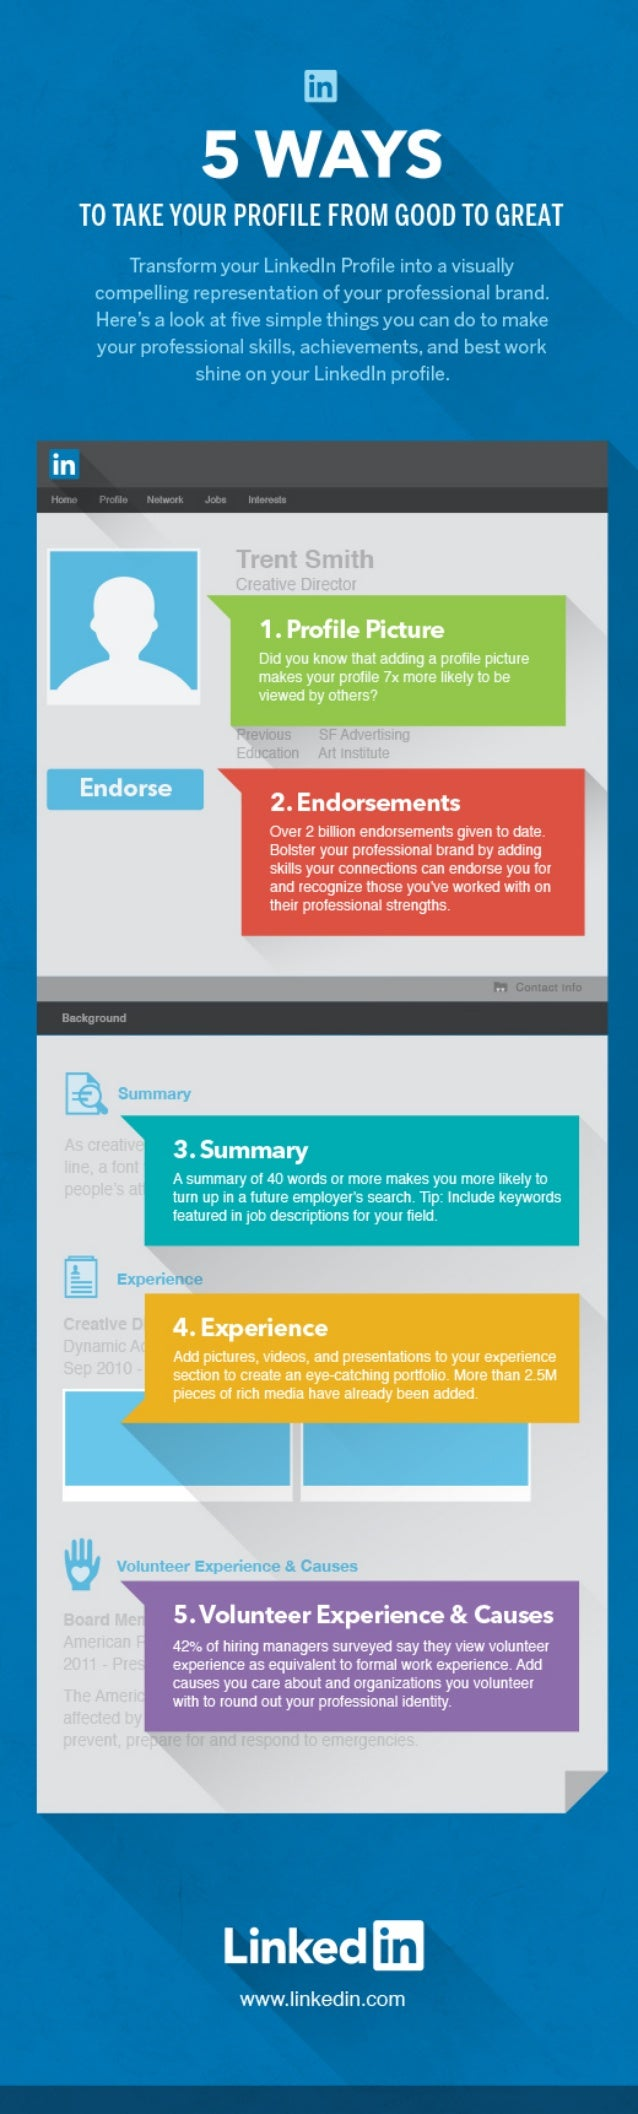 5 Ways to Take Your Profile from Good to Great